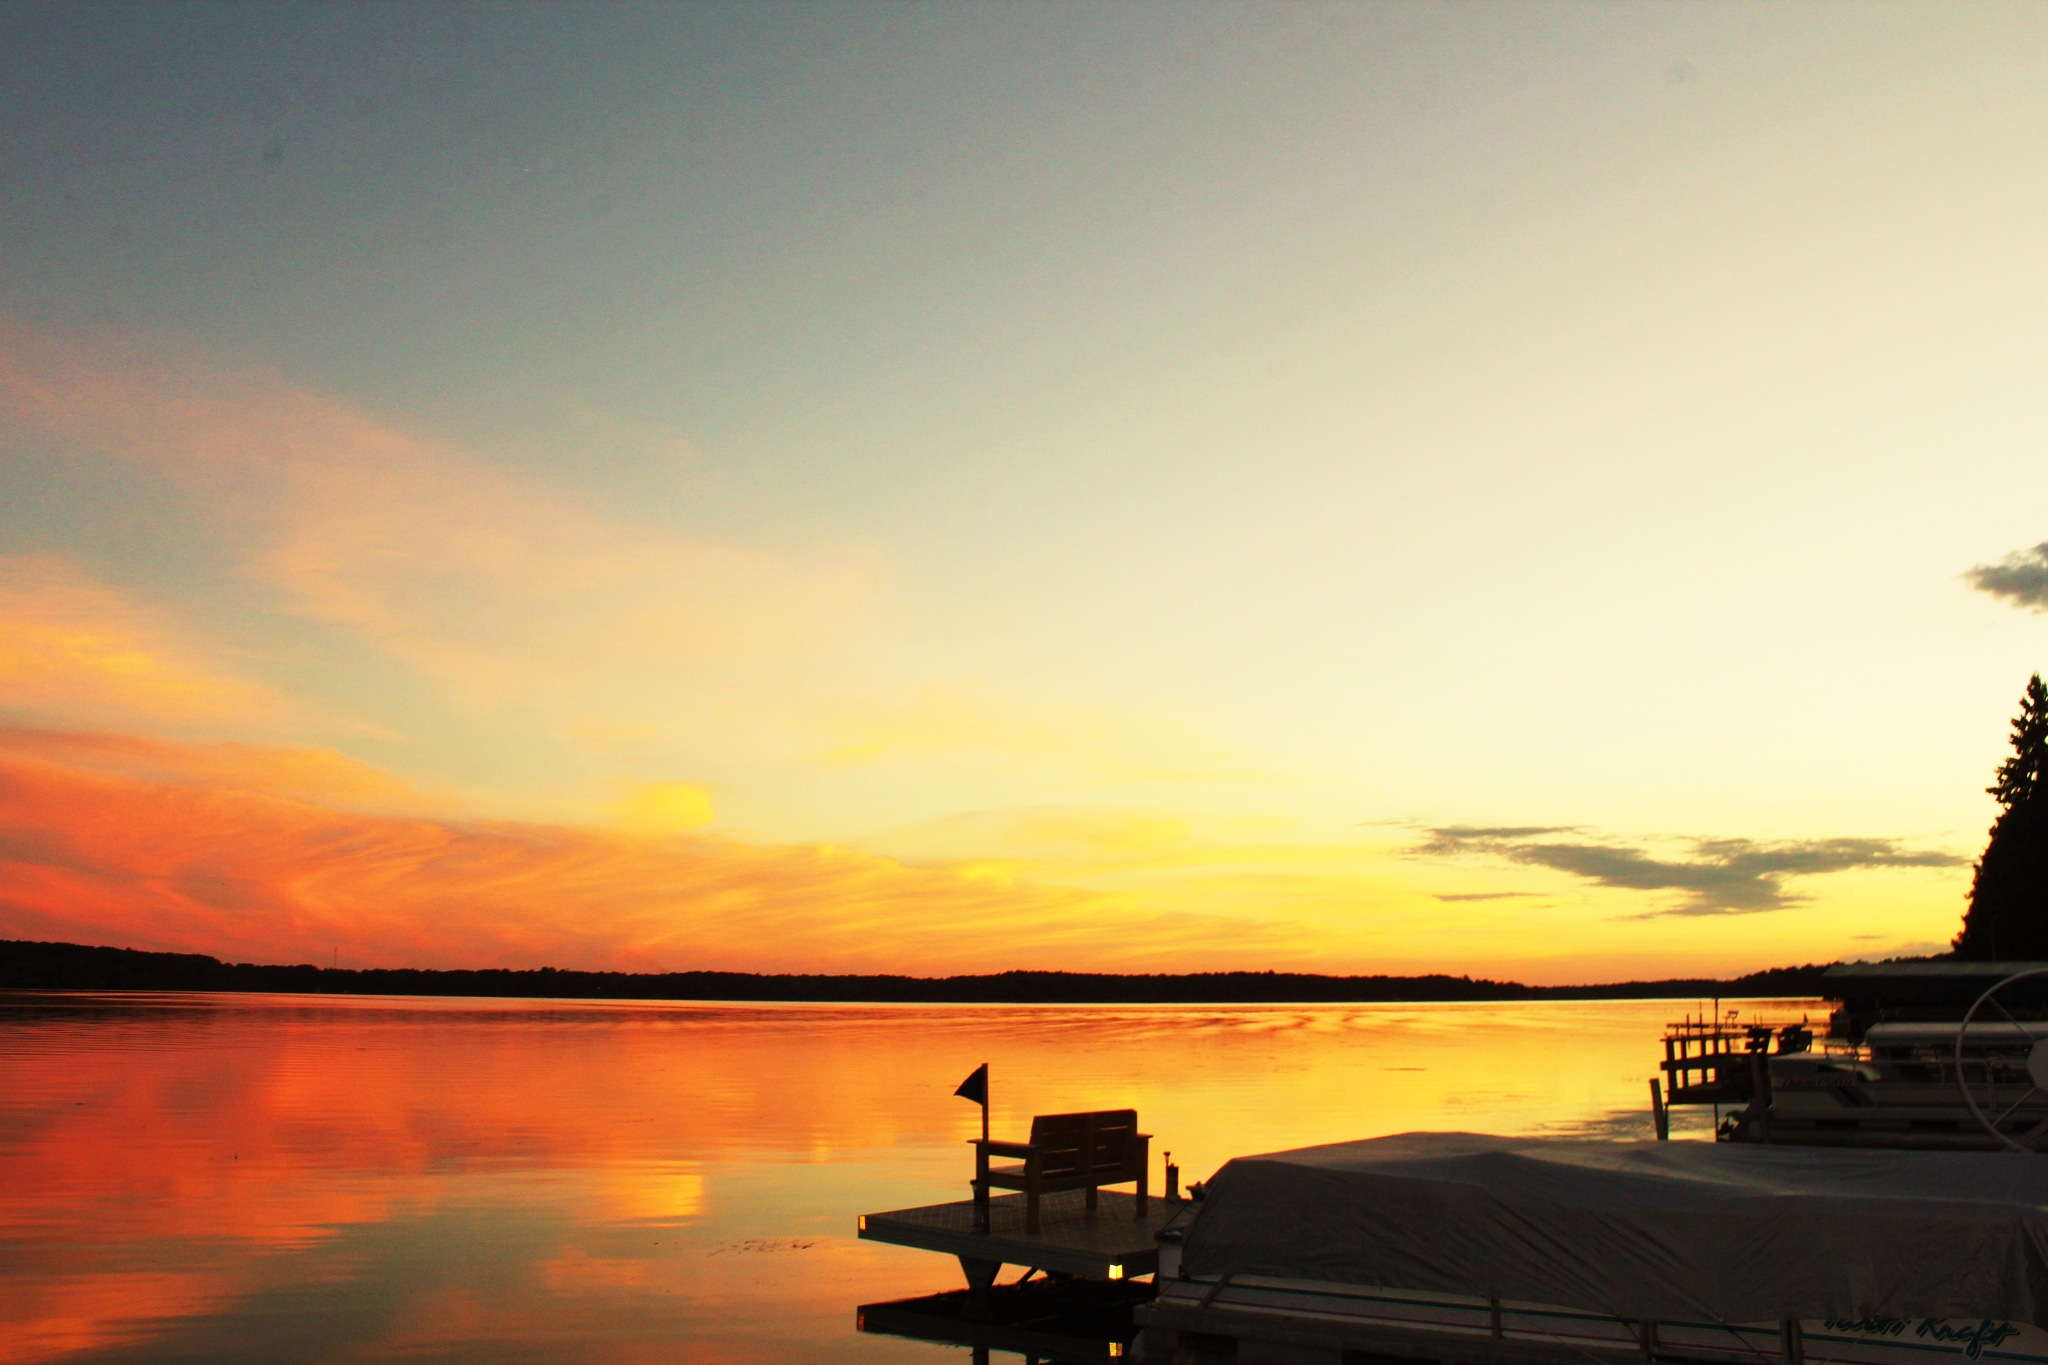 Peaceful sunset on the lake by autumn.acres.1